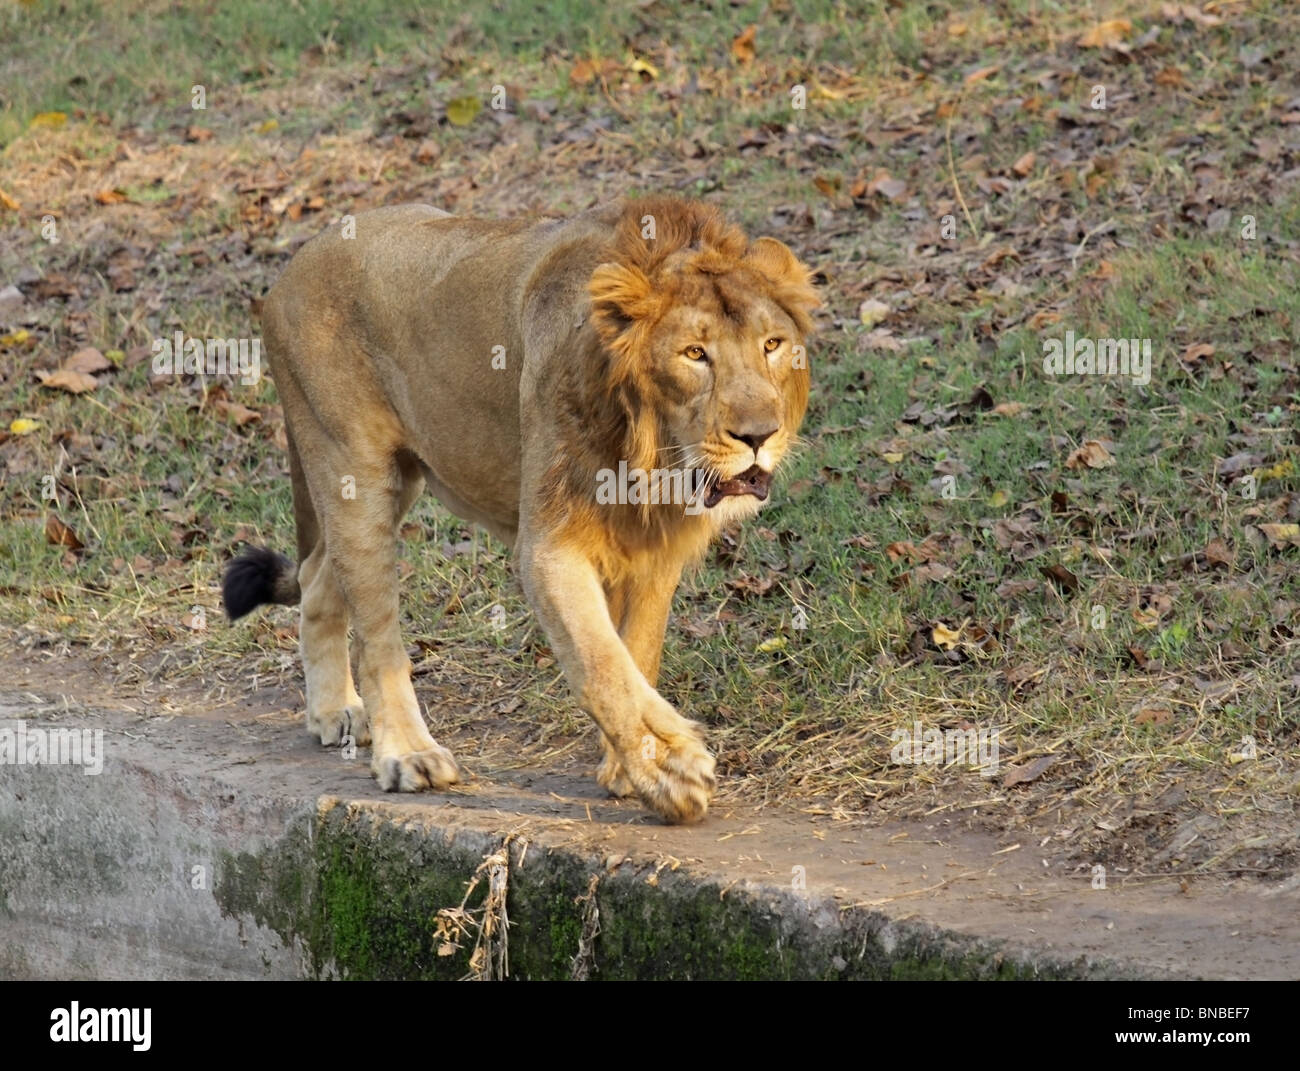 An Asiatic Lion walking in its enclosure in New Delhi Zoo, India - Stock Image